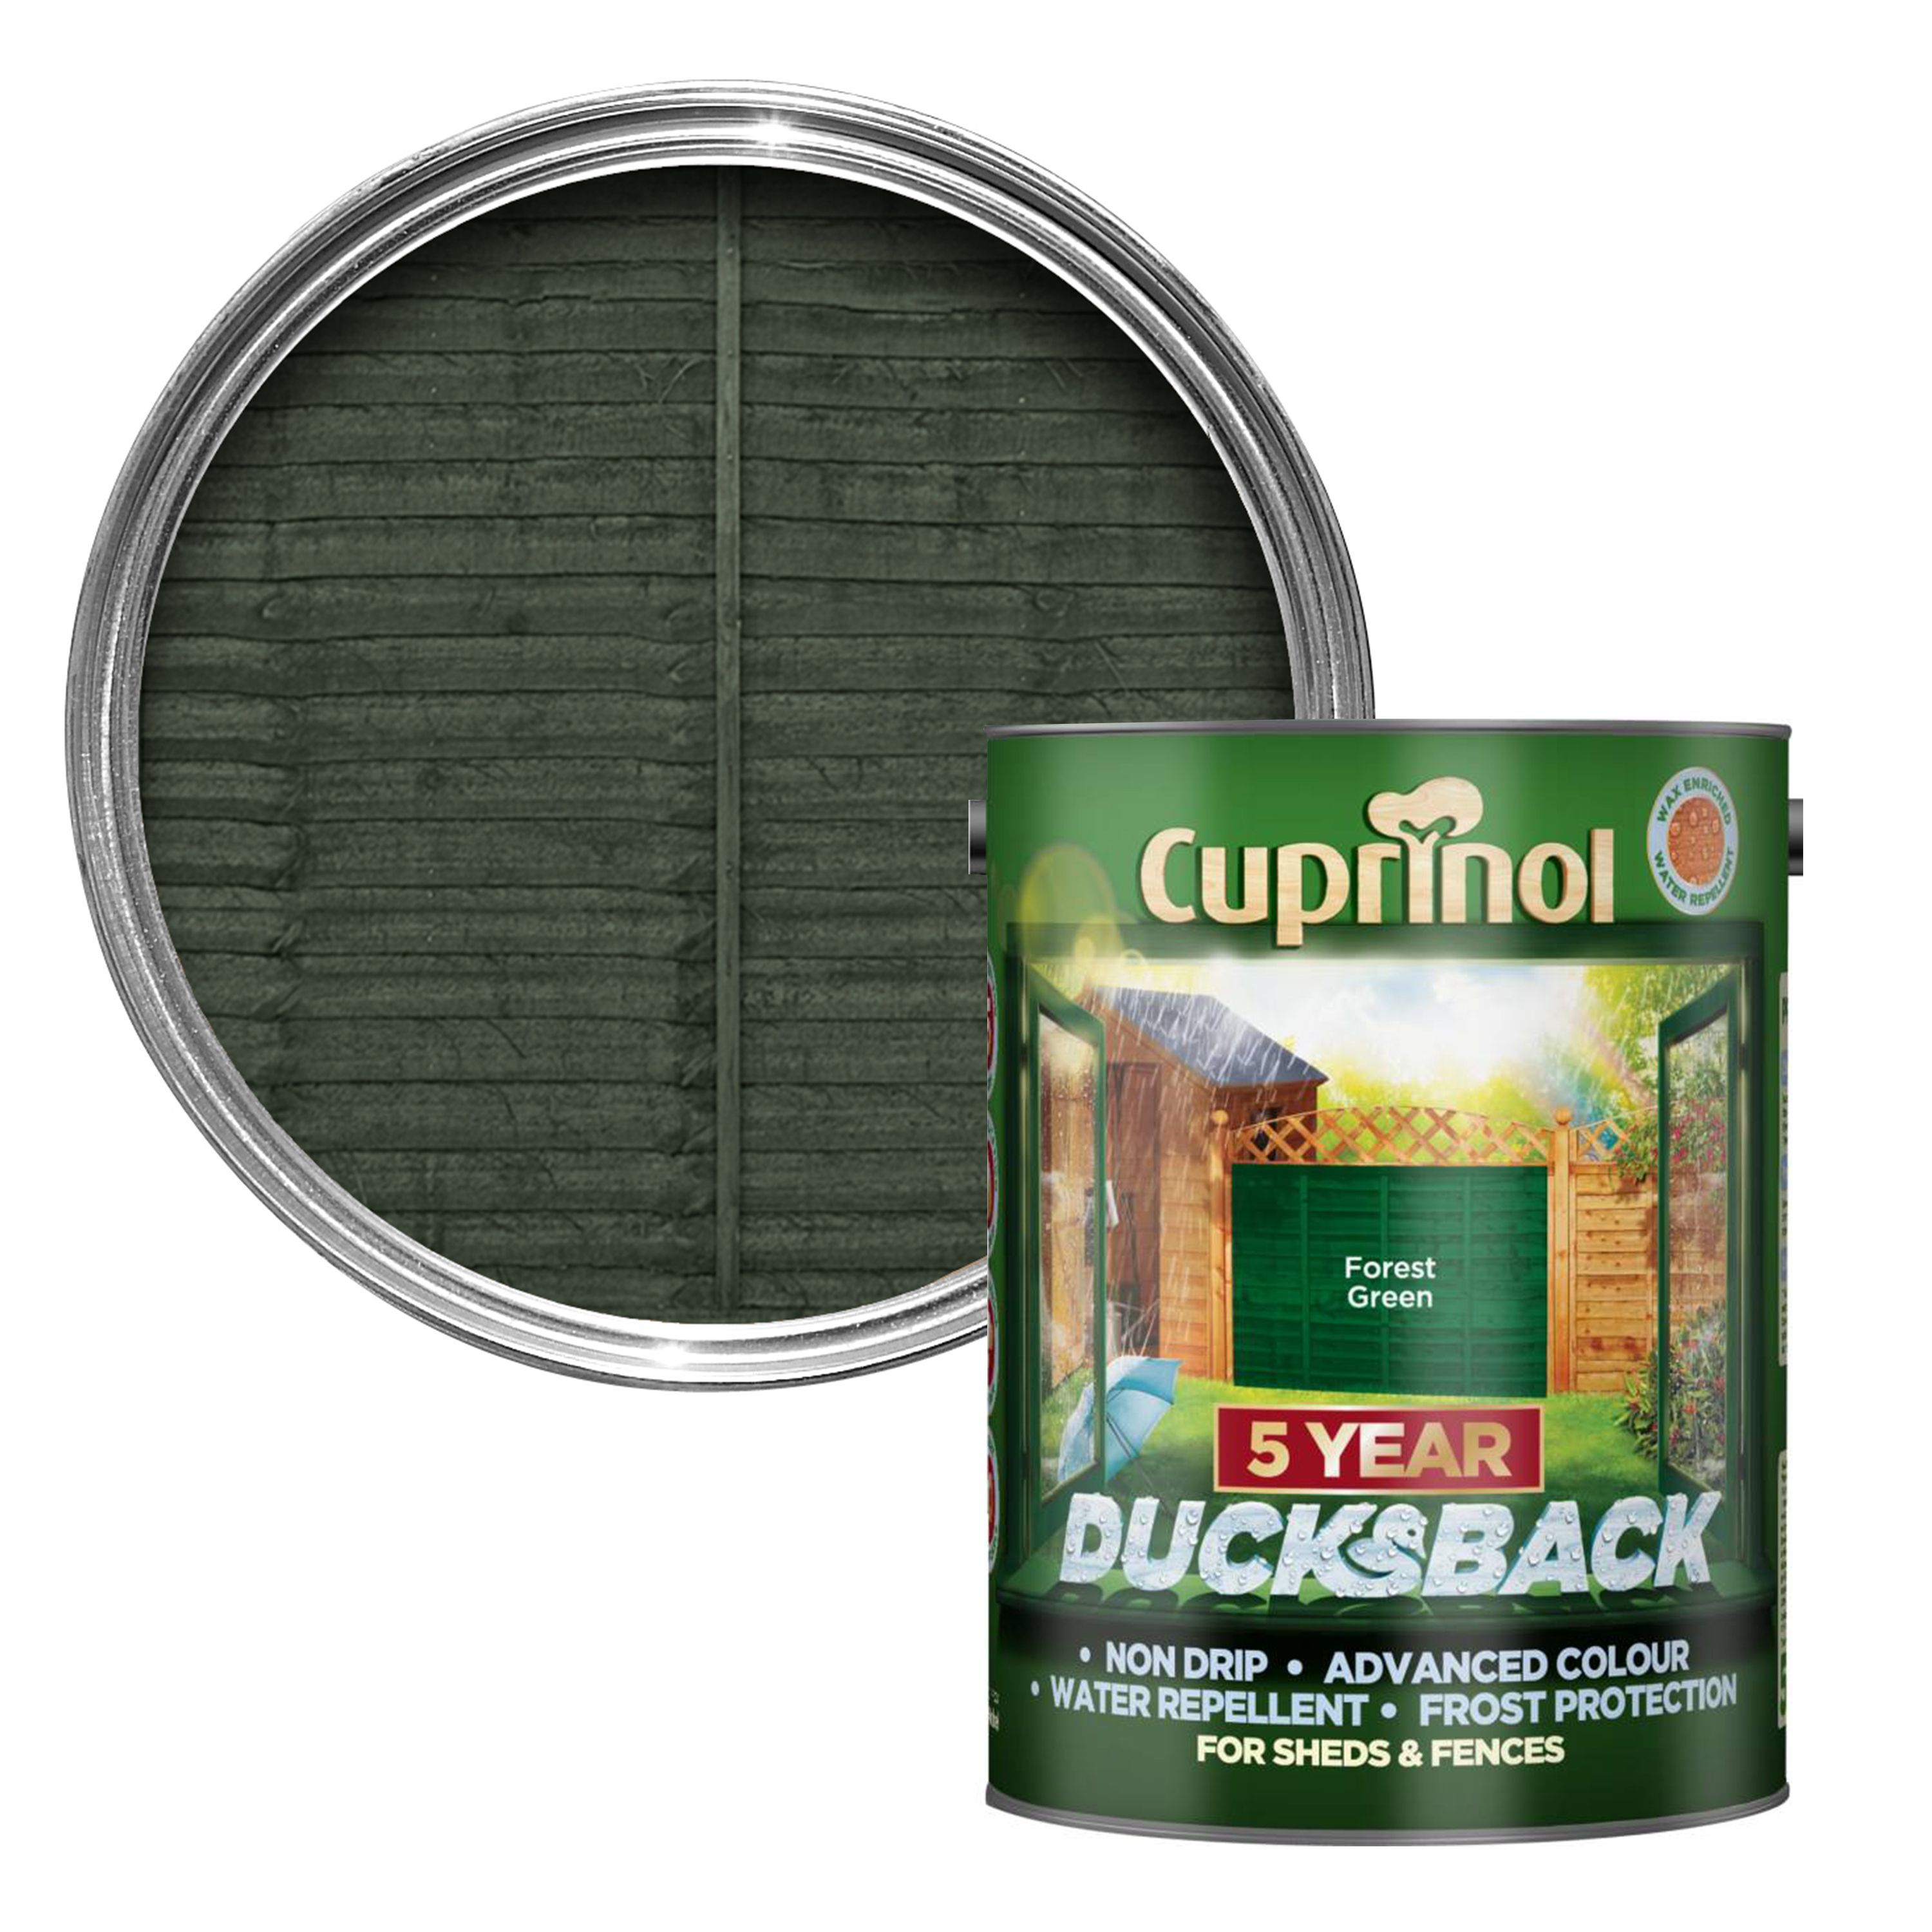 mini kitchen appliances pictures of remodels cuprinol 5 year ducksback forest green shed & fence ...